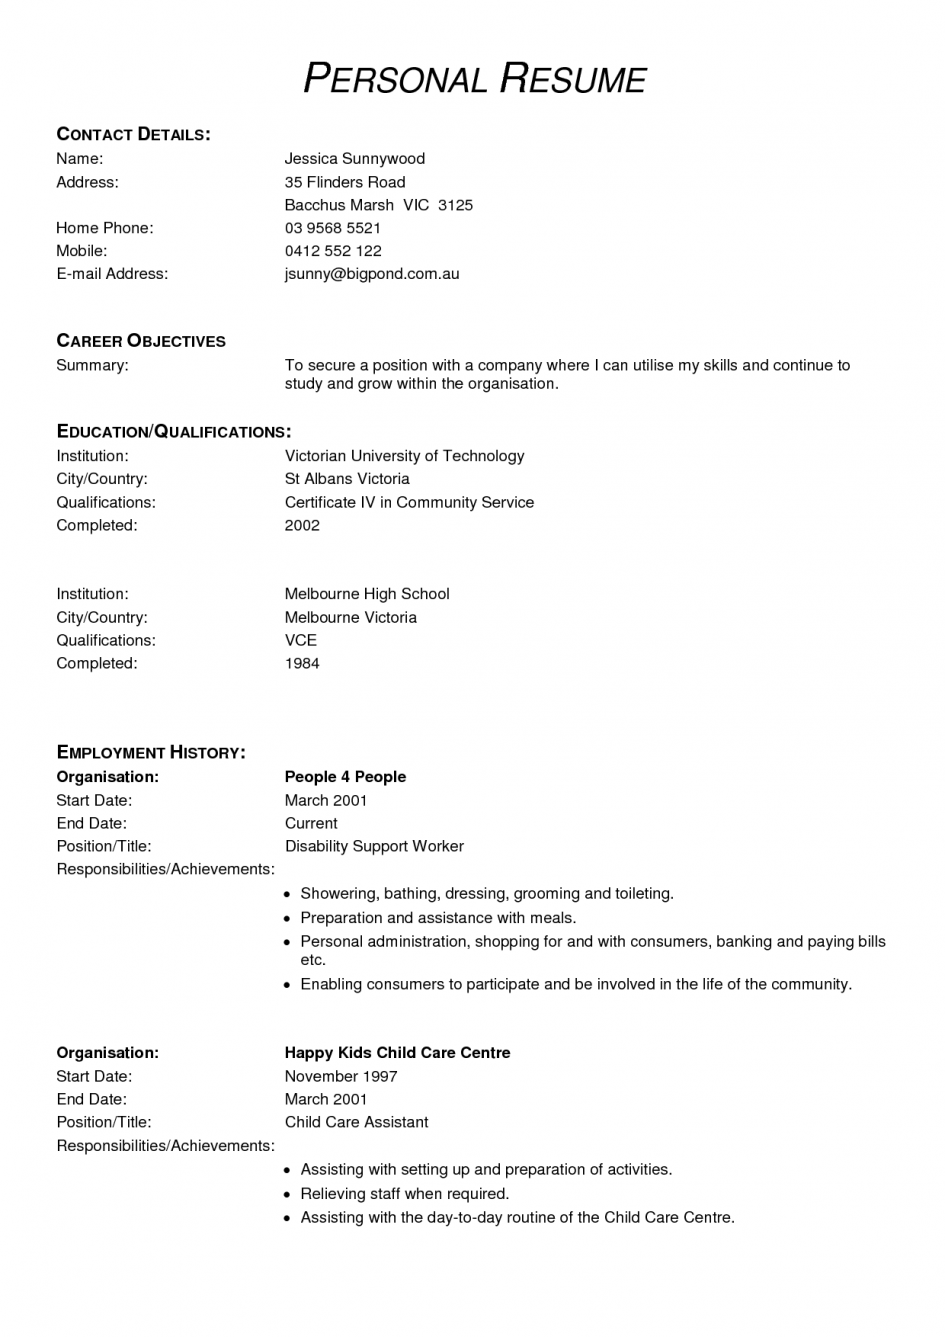 Health care assistant cv with no experienceg 9451337 sample resume for medical technologist cover letter secretary free construction contract best free home design idea inspiration madrichimfo Gallery